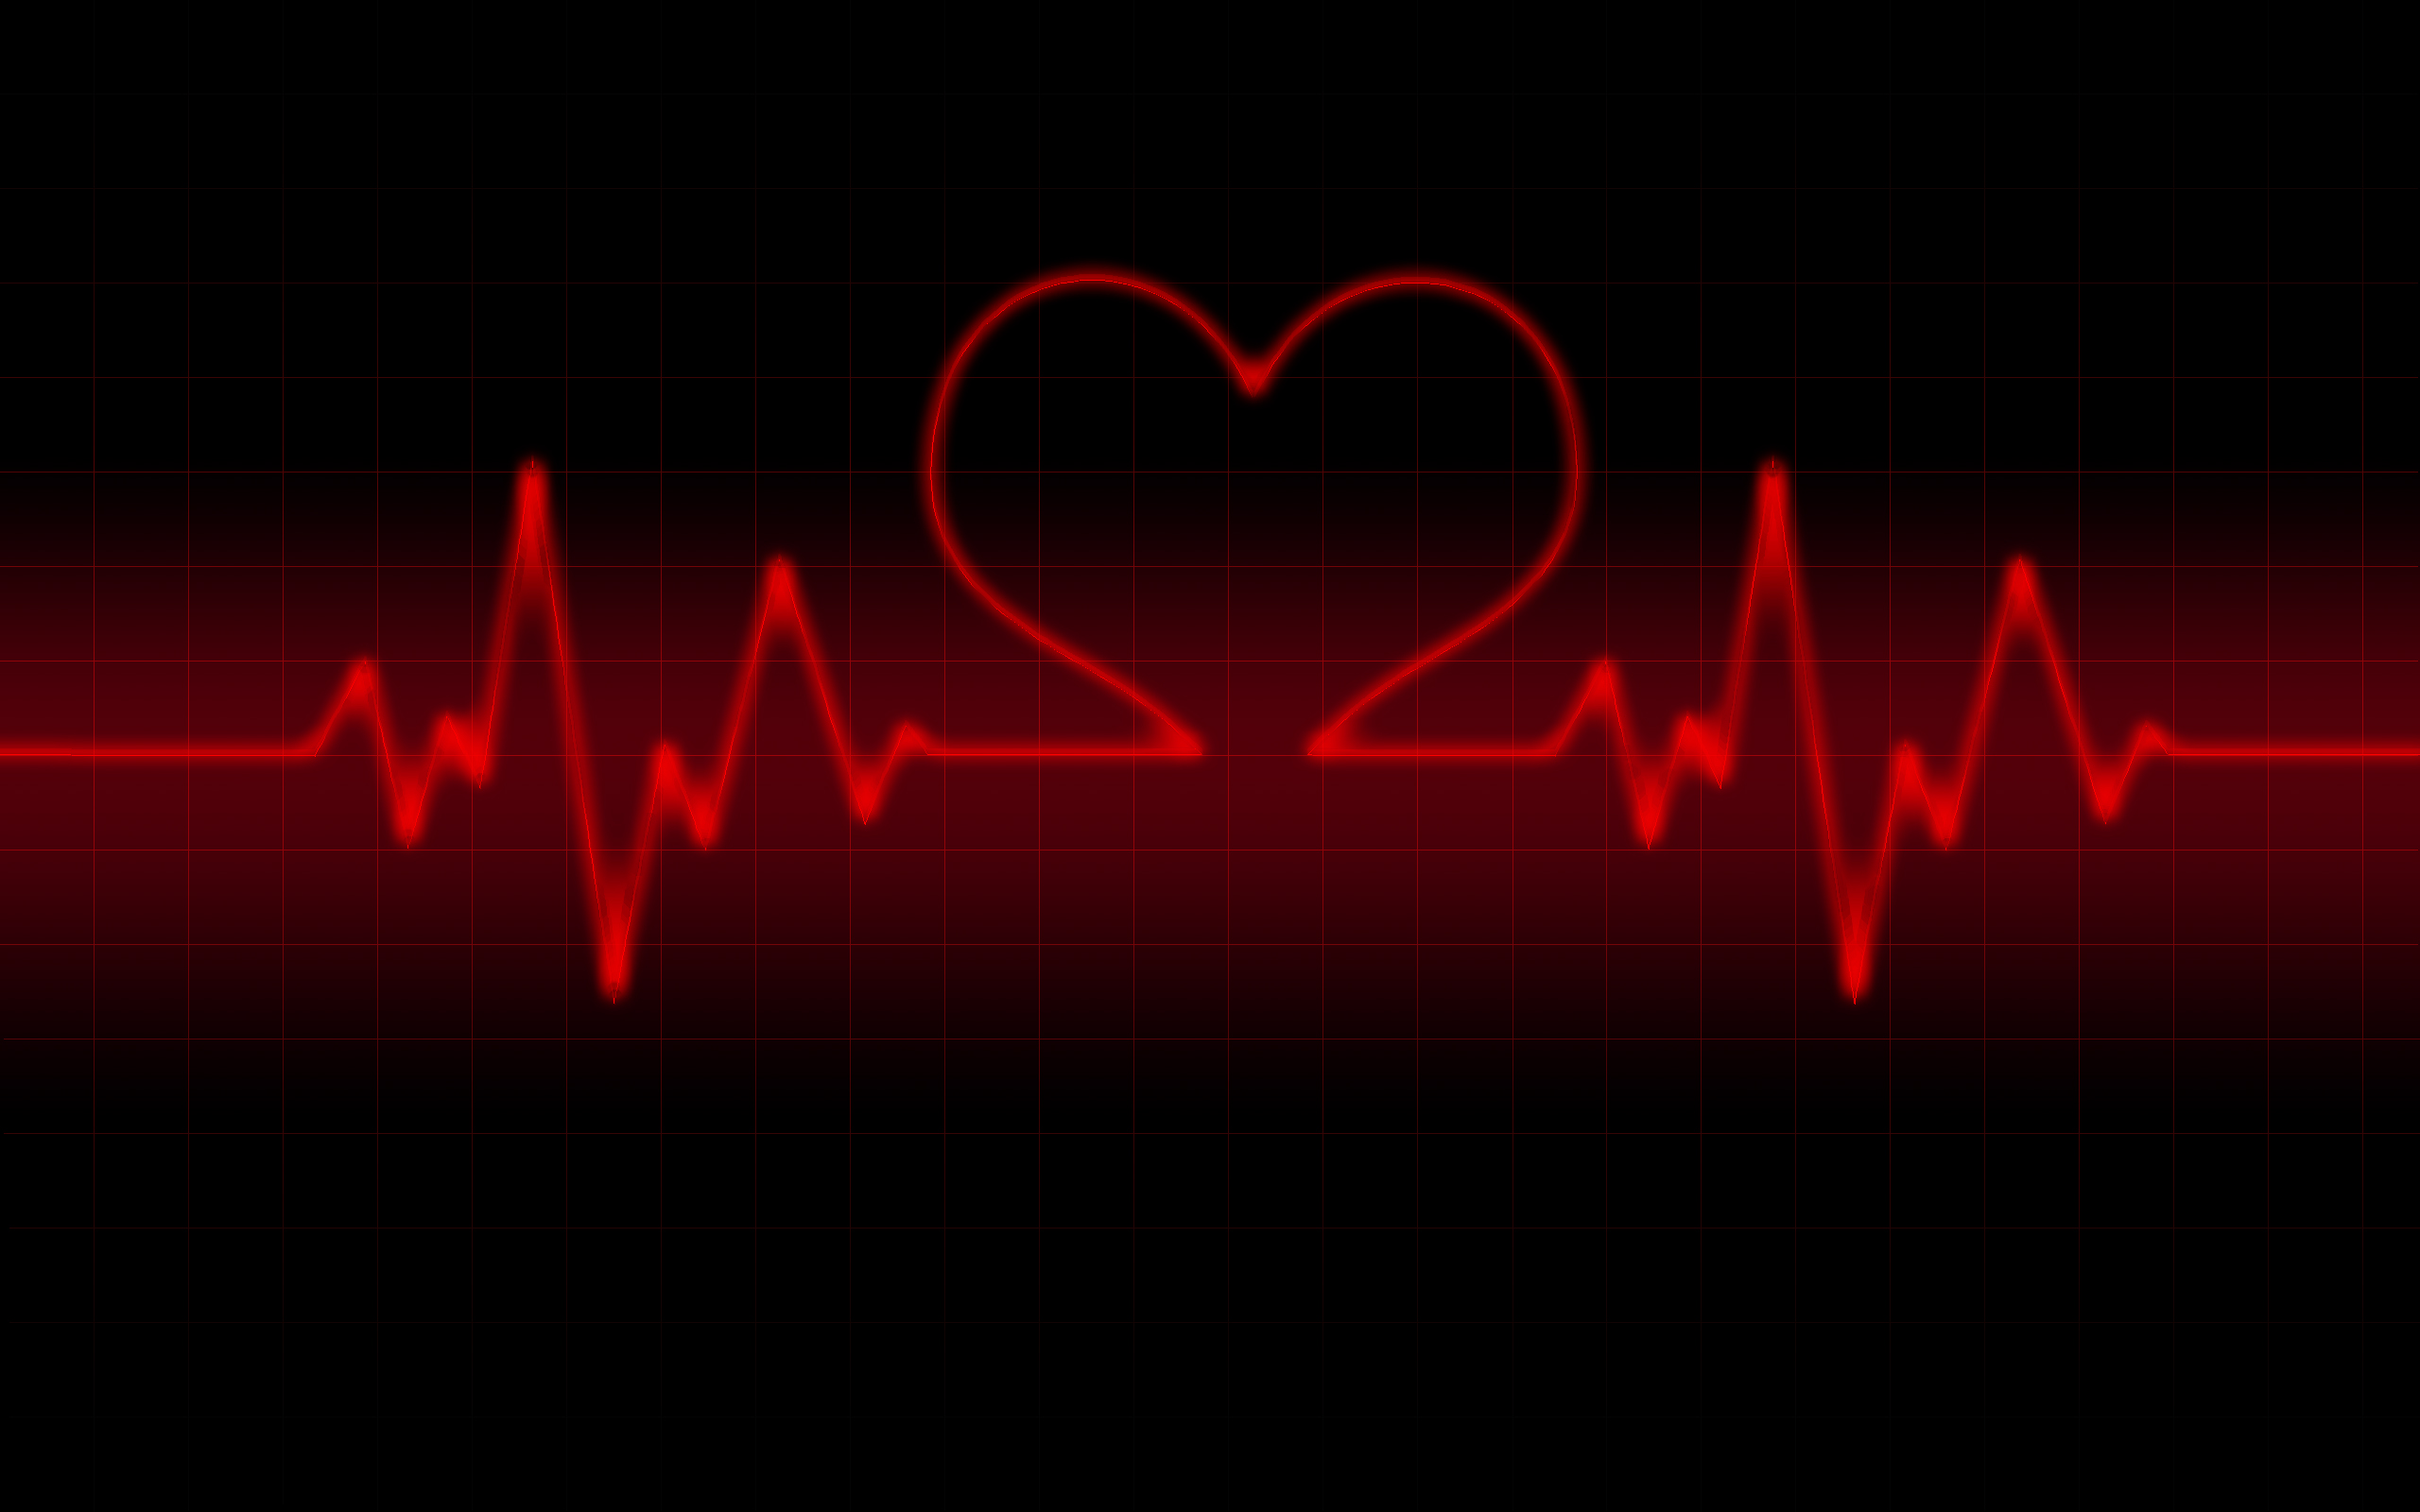 Pics photos heart black wallpaper romantic love pictures - Red Hearts Black Background Wallpapersafari